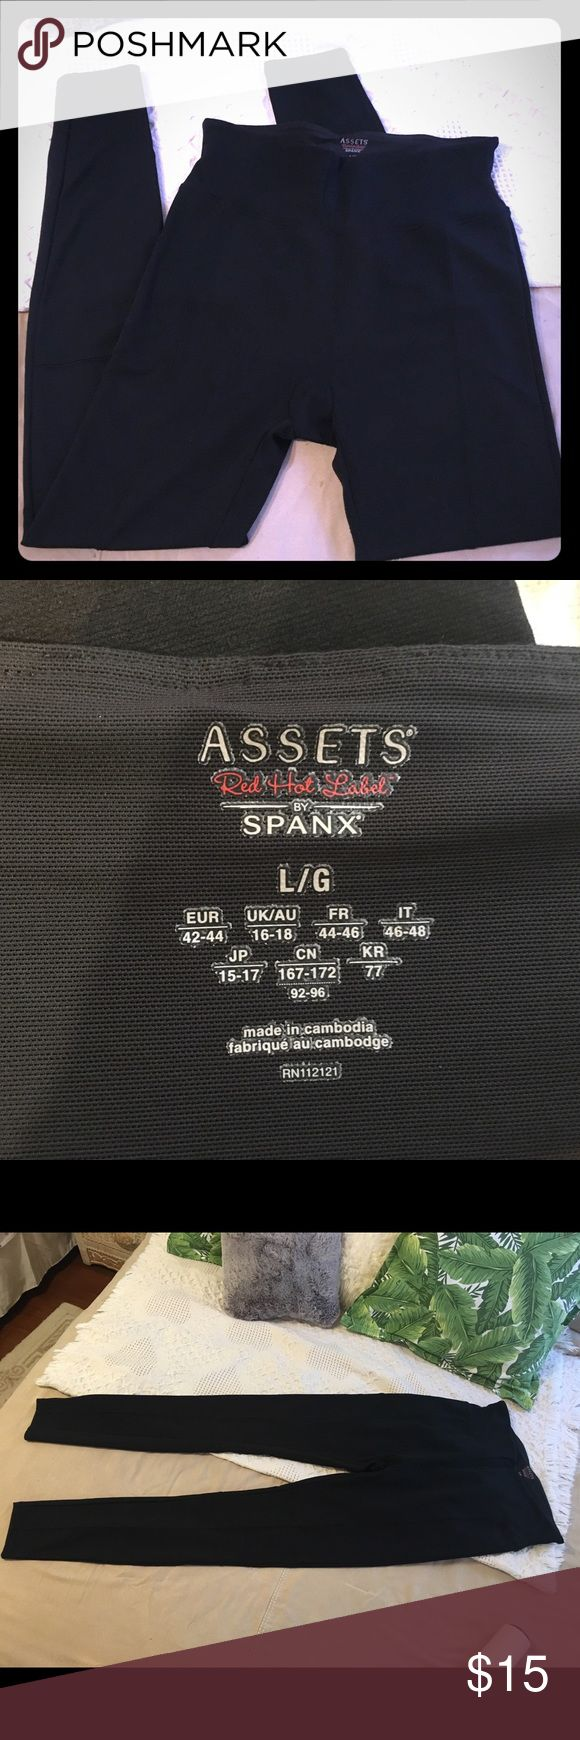 Assets by Spanx hi-waist leggings Assets by Spanx thick leggings, size L.  Like new, only worn to try on.  These are thick enough to stand alone as pants in my opinion.  There is some seam detail that's hard to see in the photos, but gives it a ponte pant look Assets By Spanx Pants Leggings